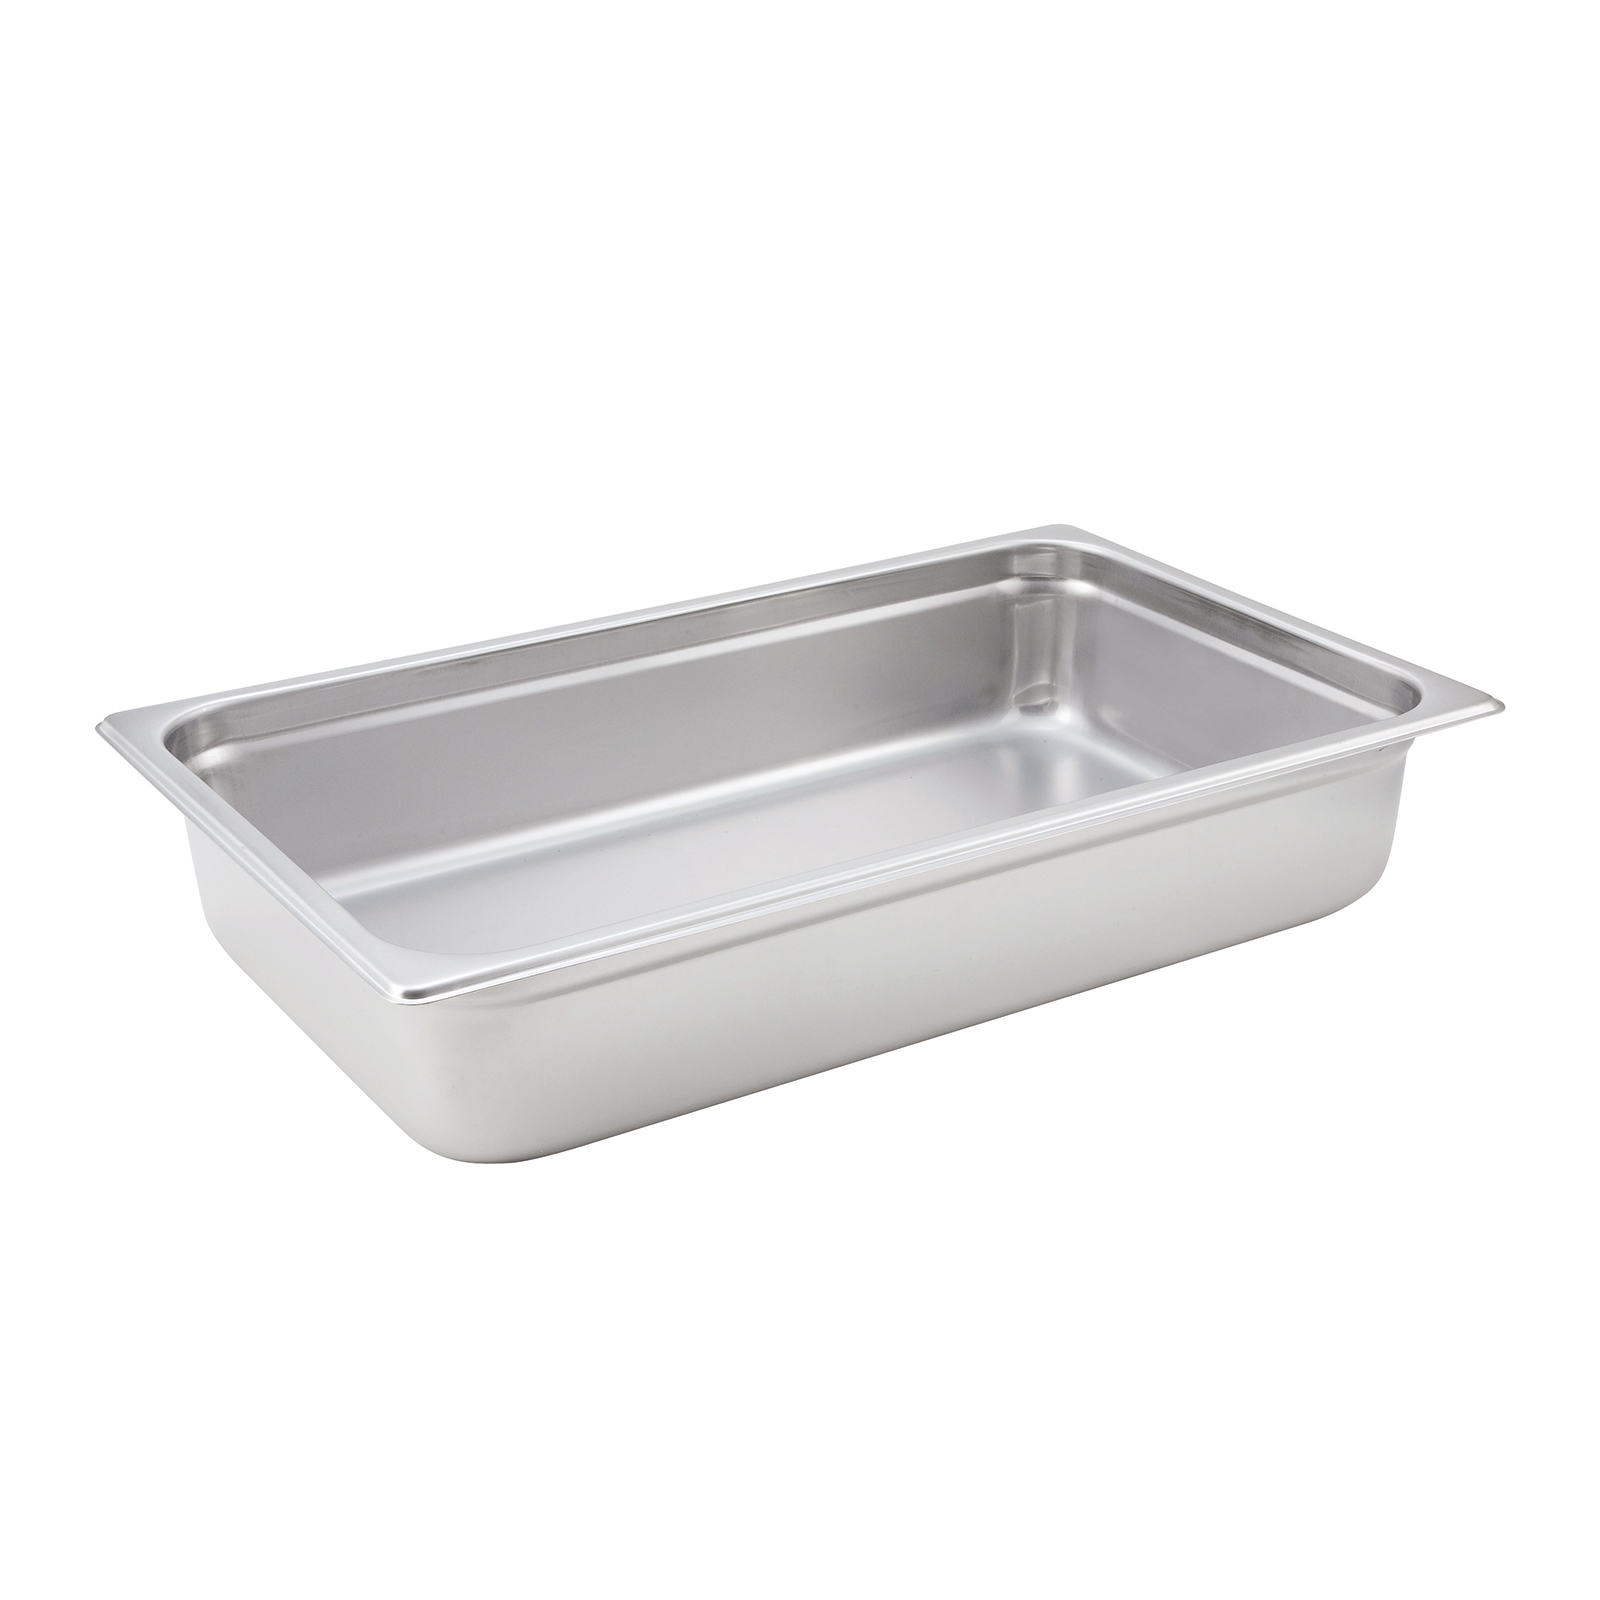 Winco SPJH-104 steam table pan, stainless steel